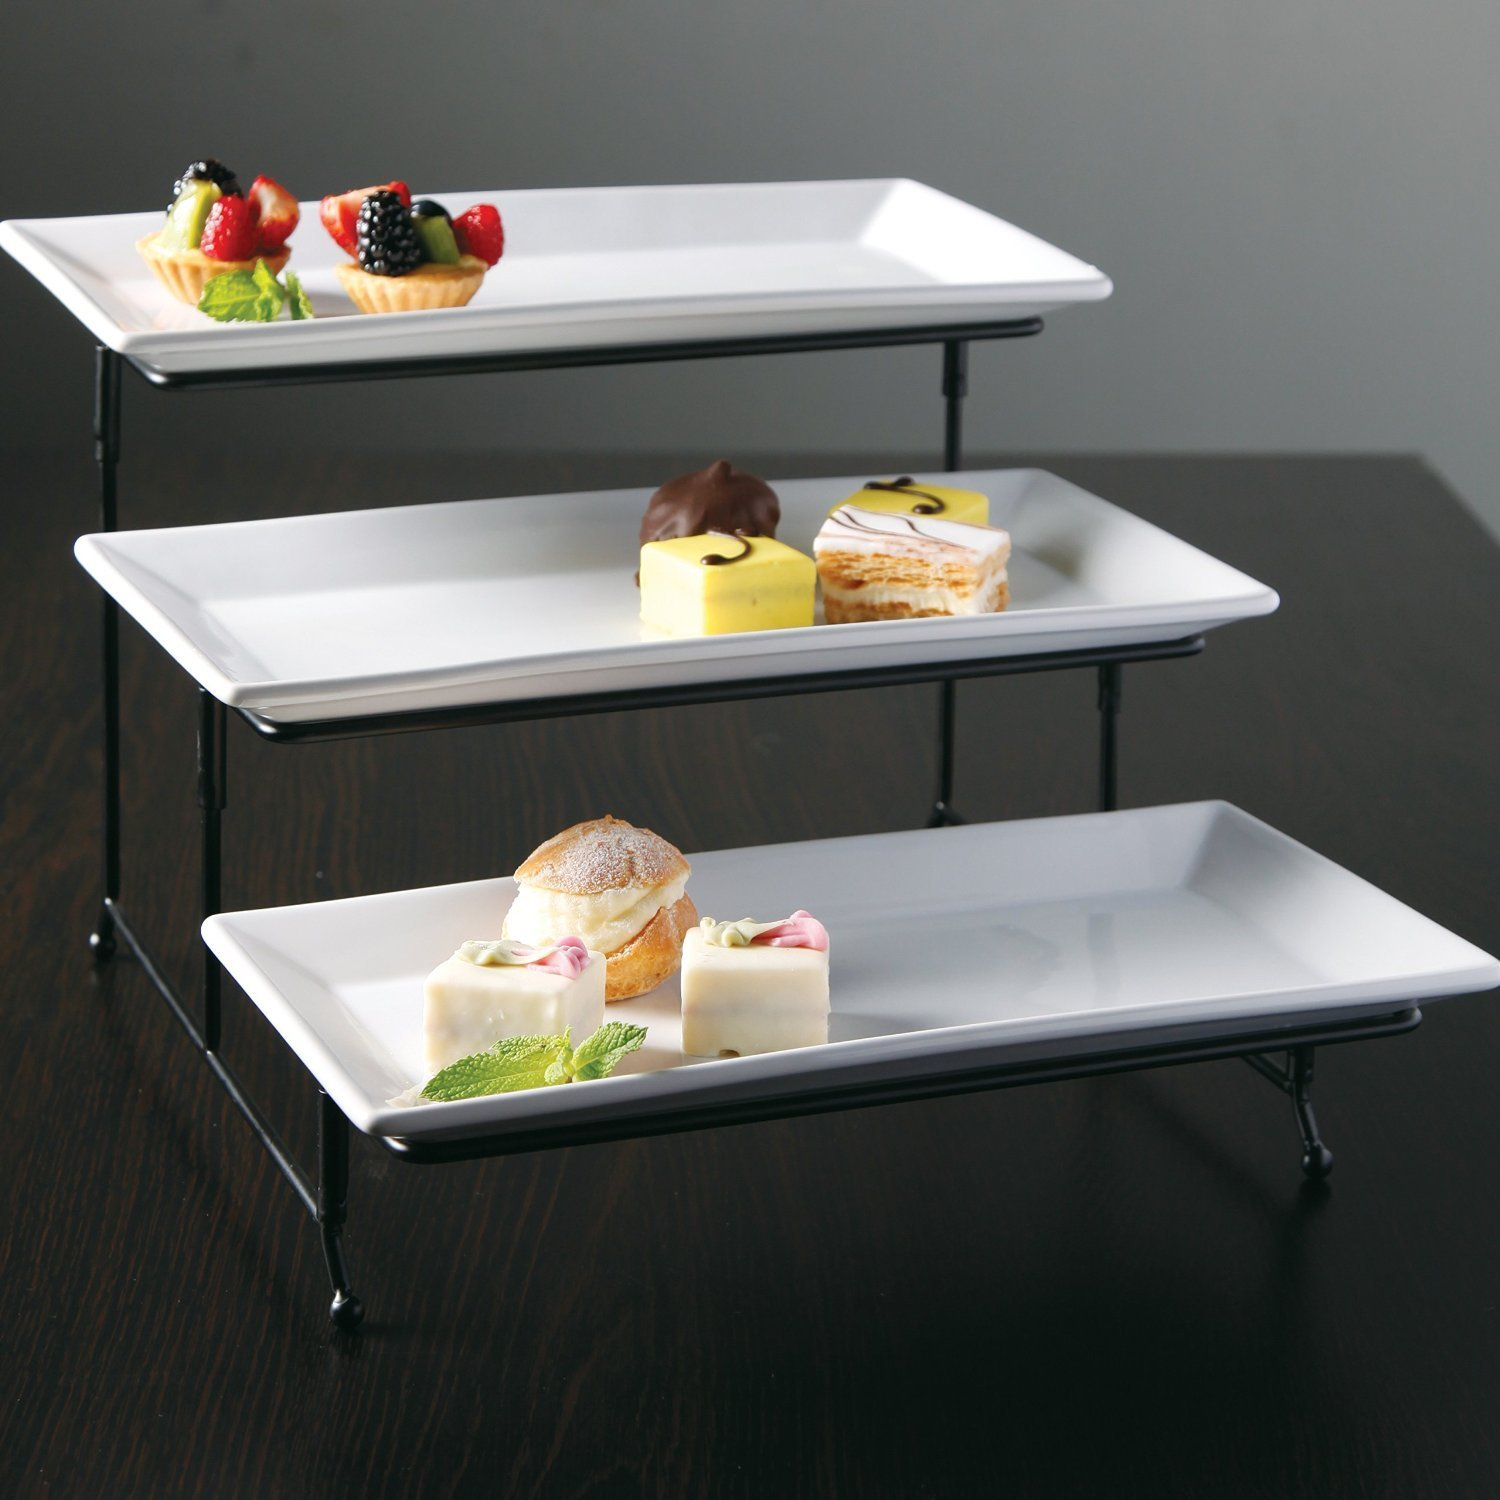 Gibson Elite Gracious Dining 3 Tier Plate Set with Metal Stand